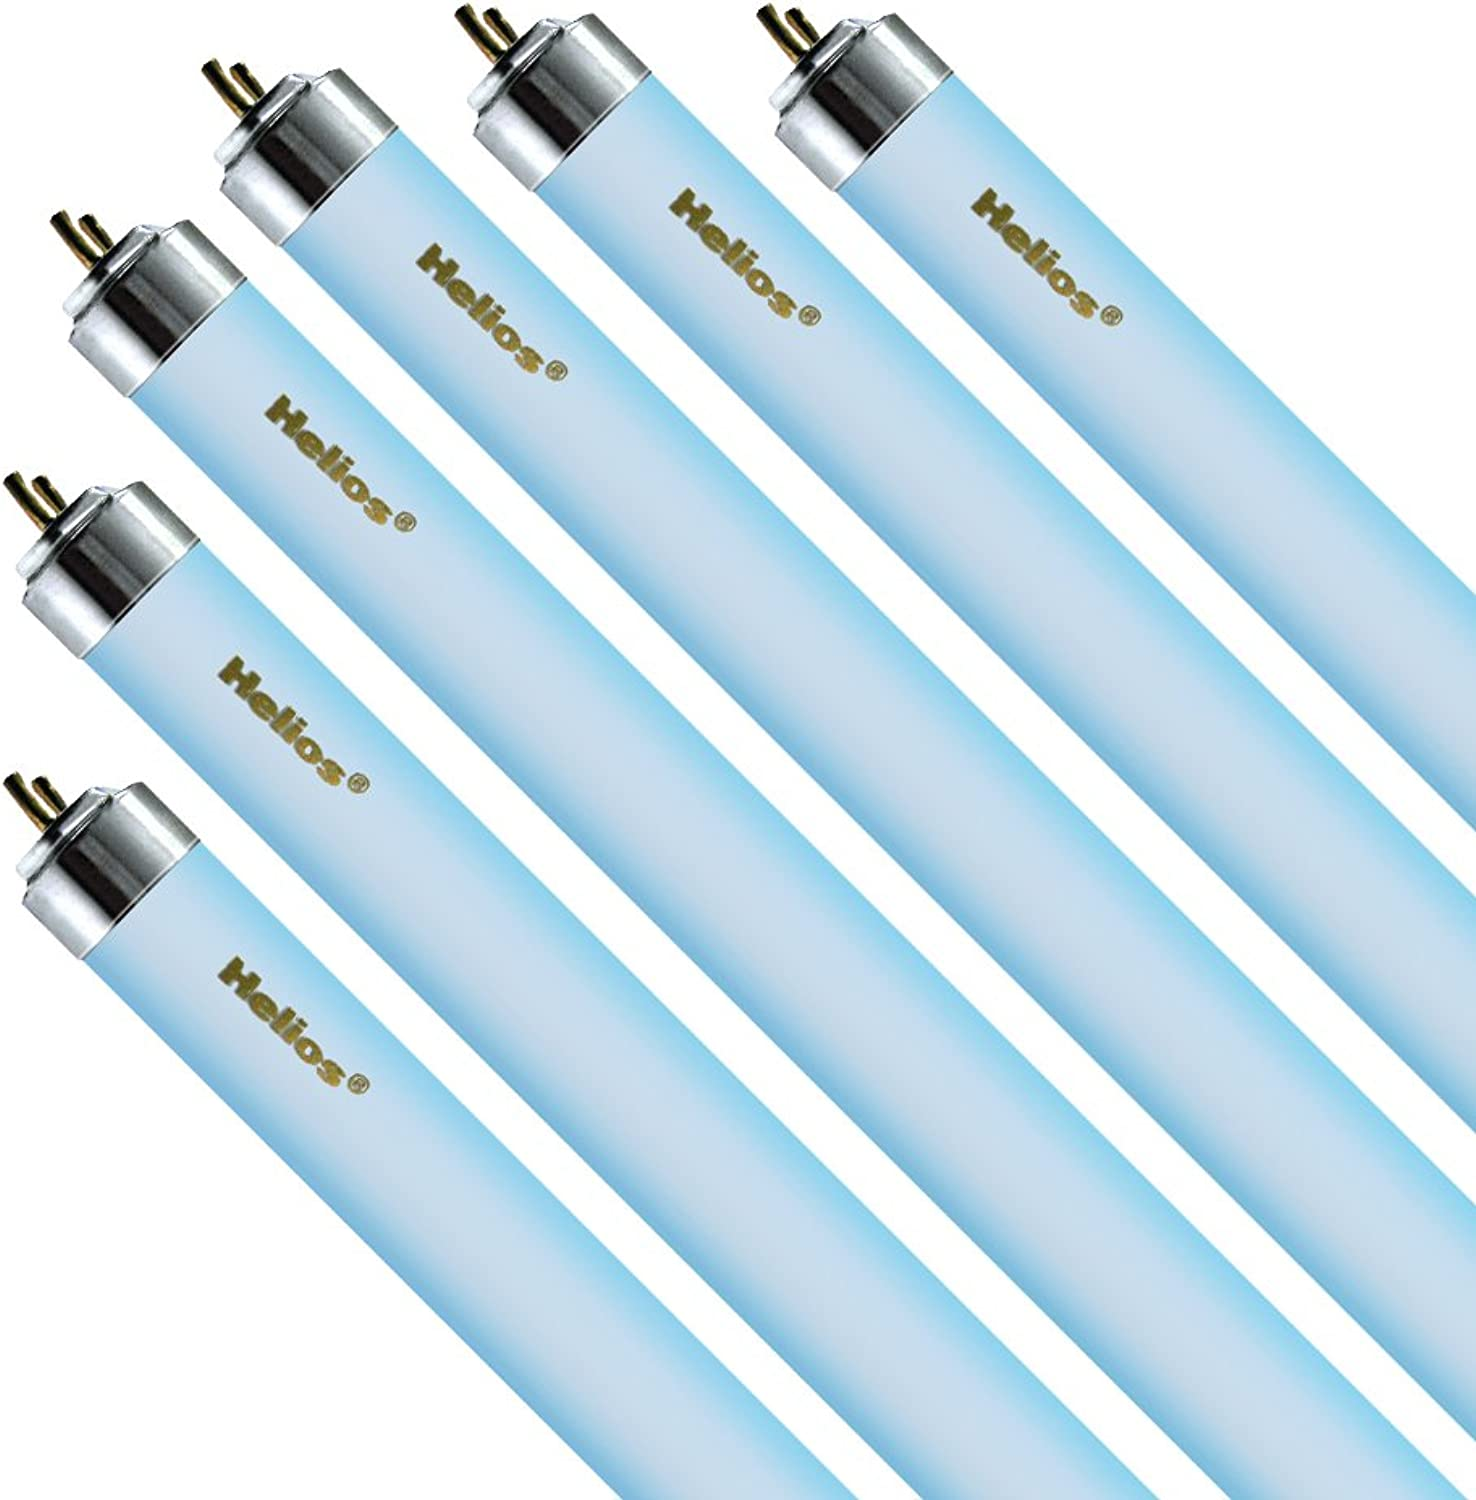 Helios 30watt T6 Actinic O3 Light for Aquarium, 36Inch, bluee, 6Pack